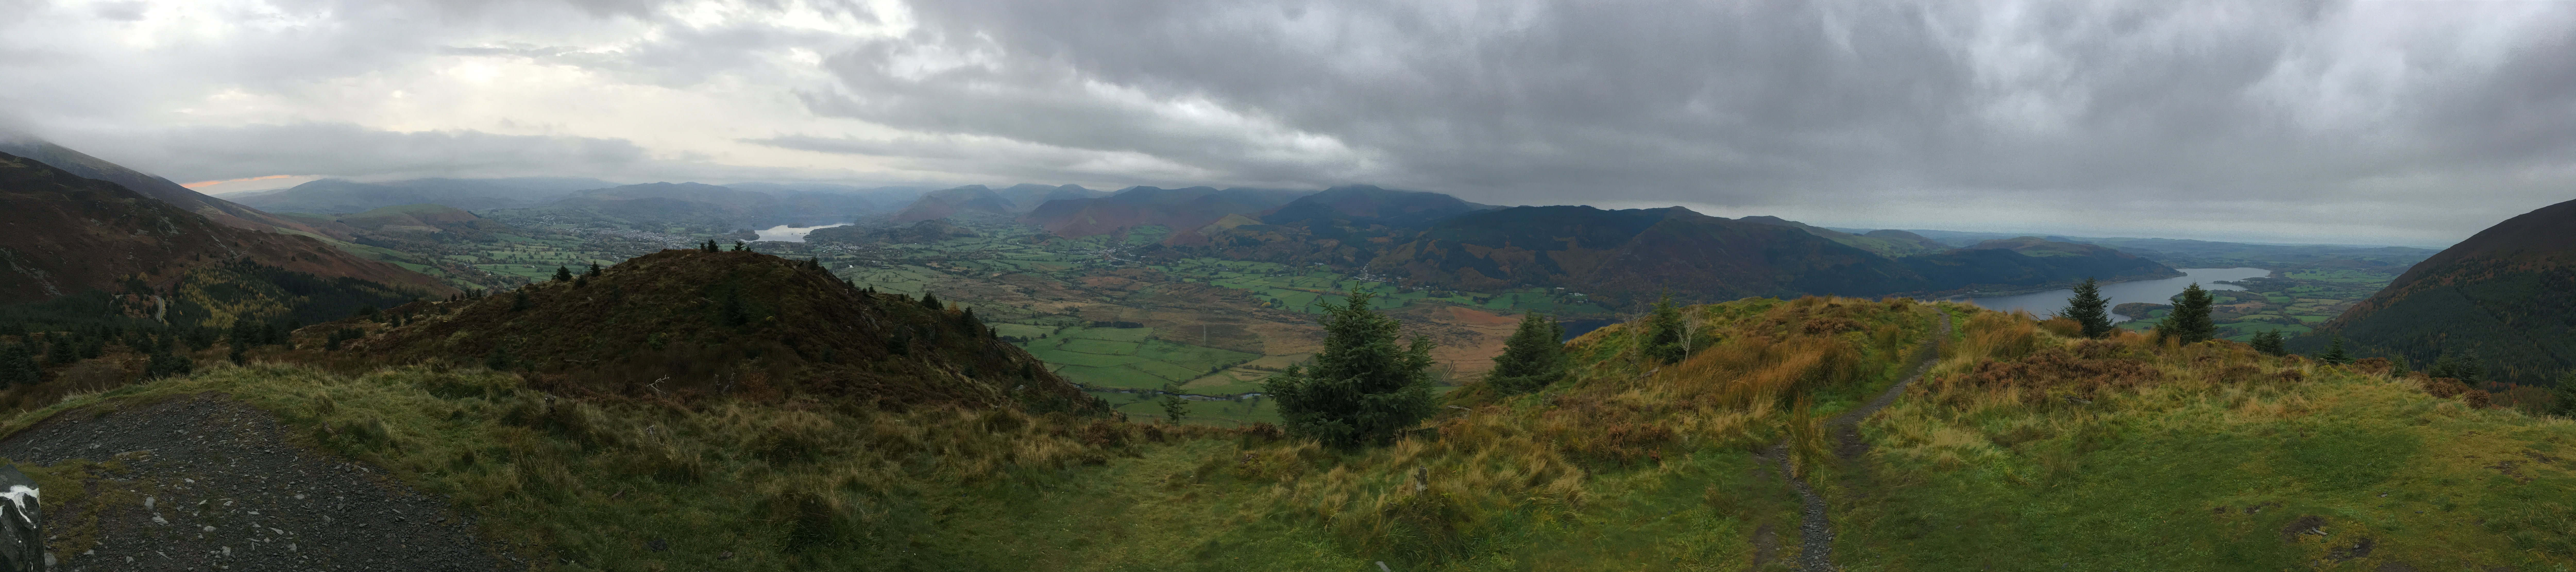 View from near the summit of Dodd with Derwentwater and Bassenthwaite Lake